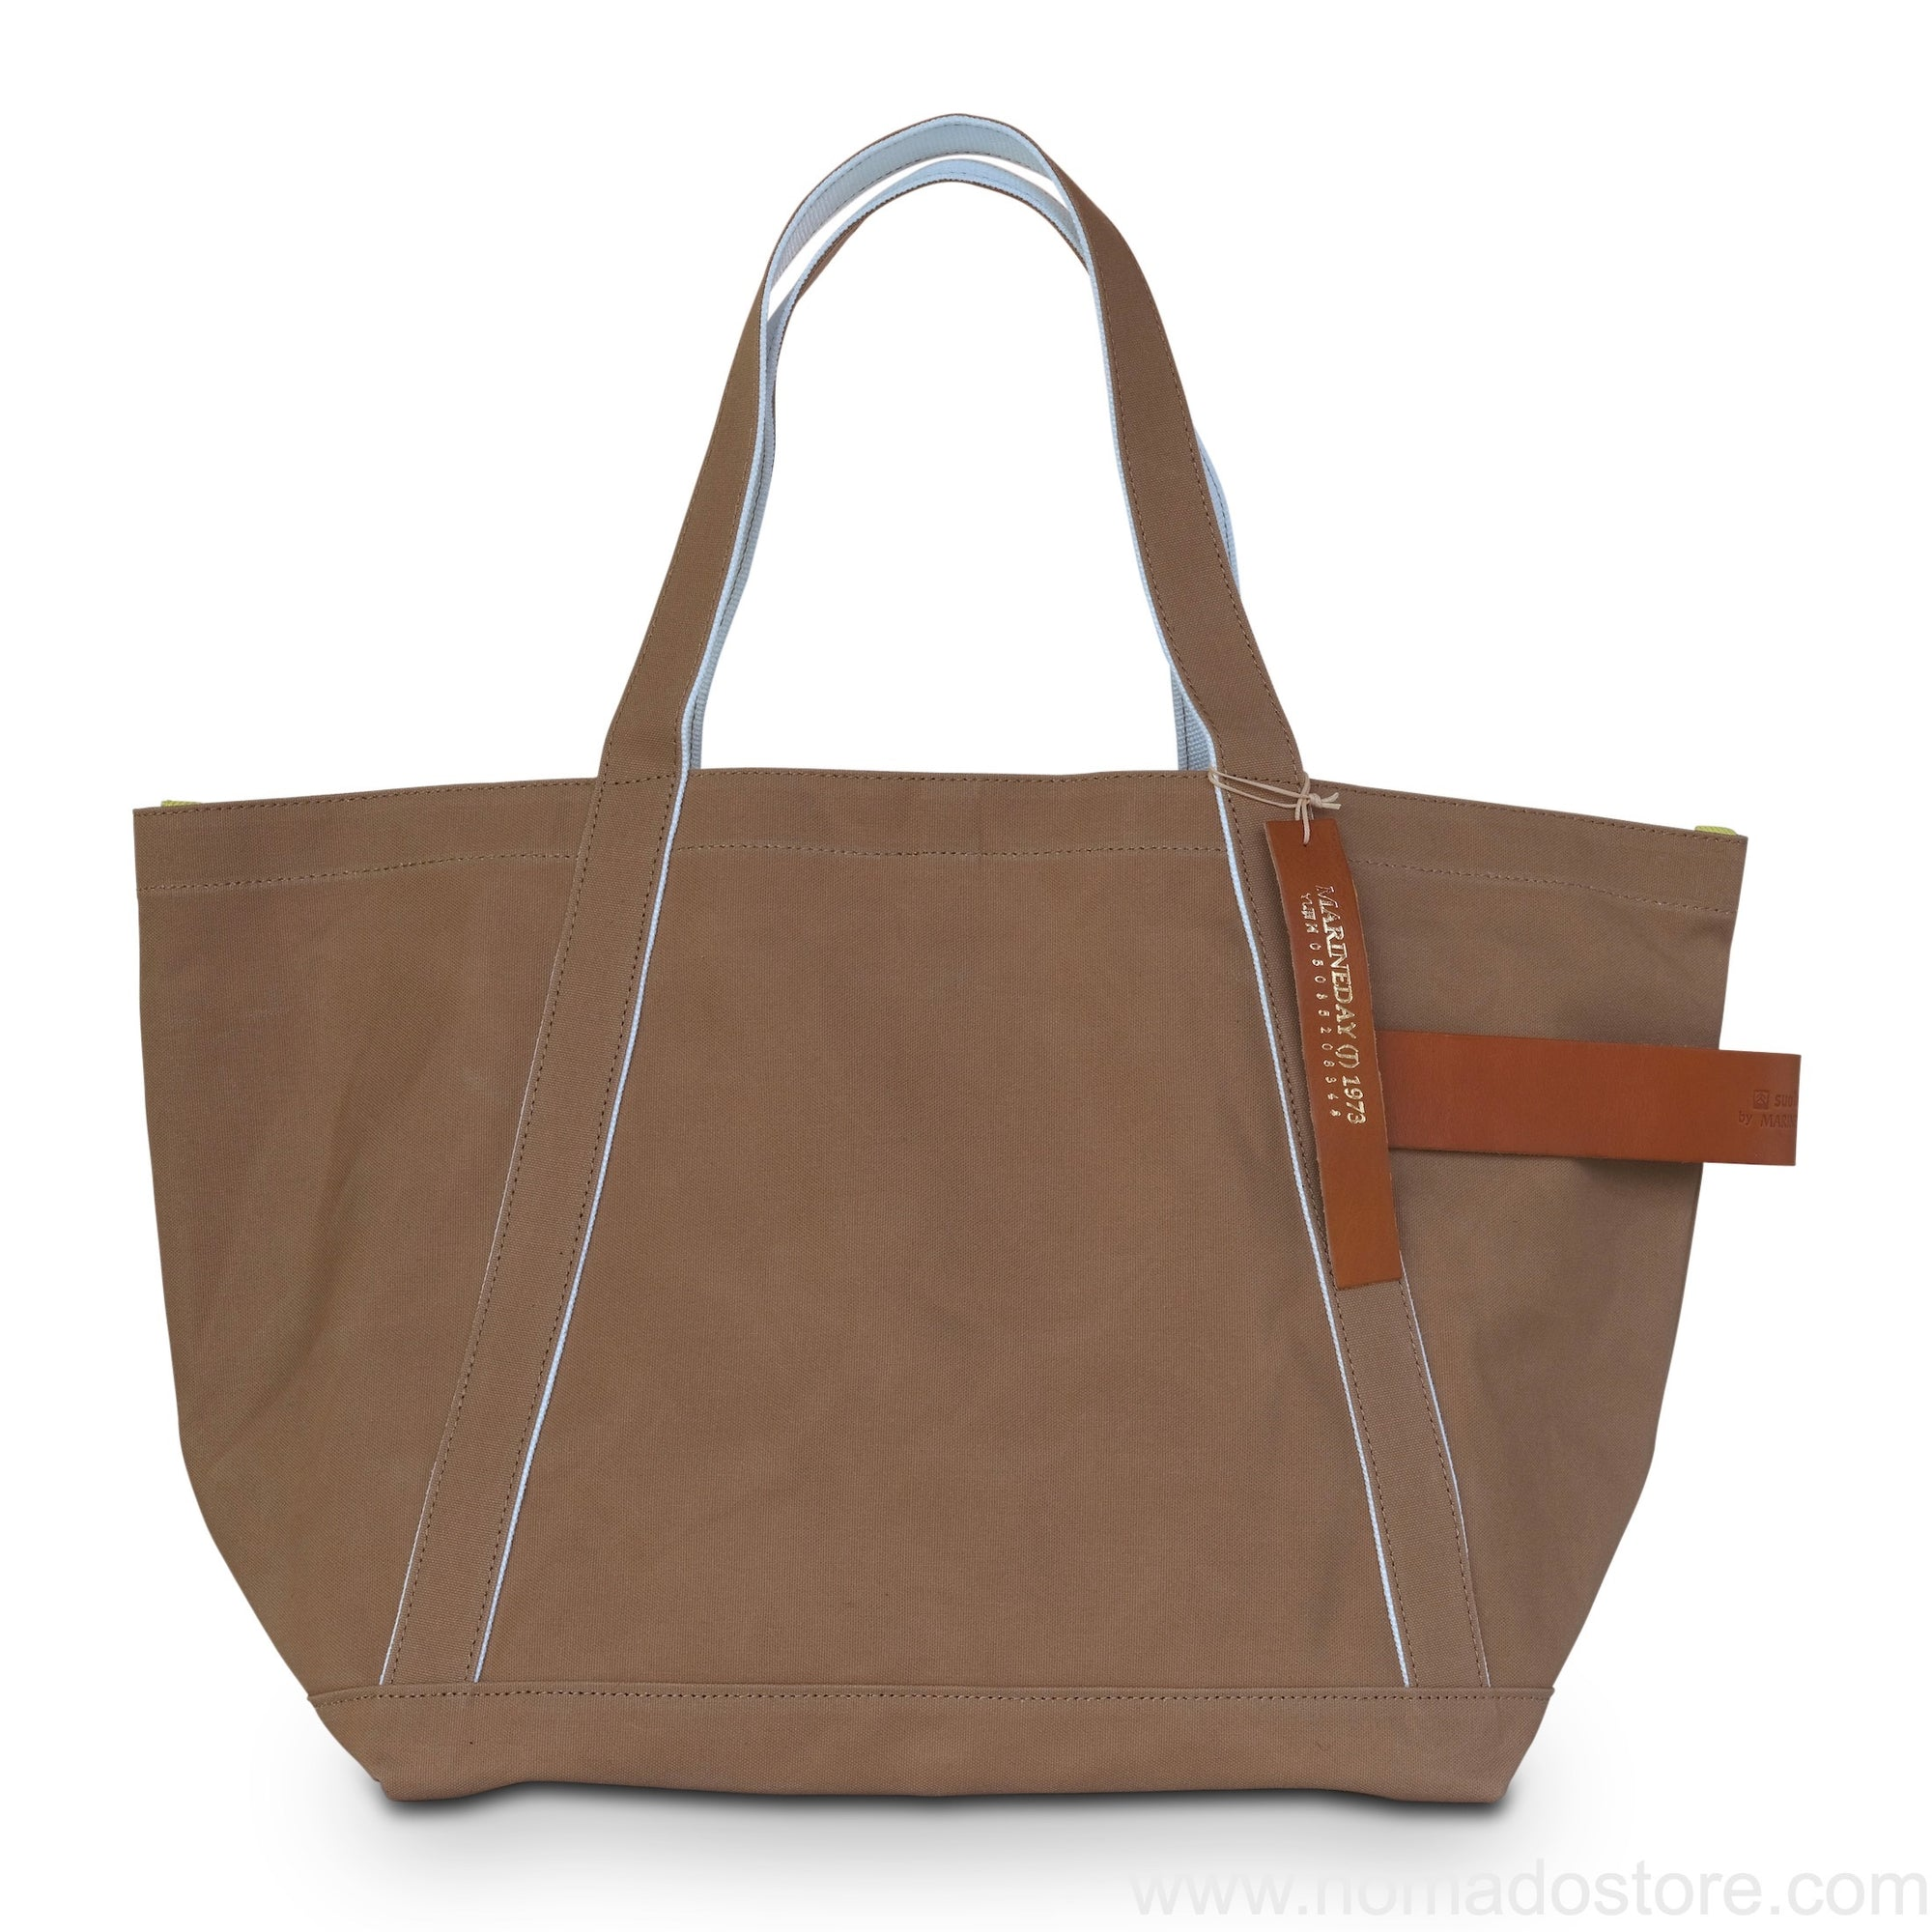 Marineday Tender Canvas Tote Bag (Moca) - NOMADO Store